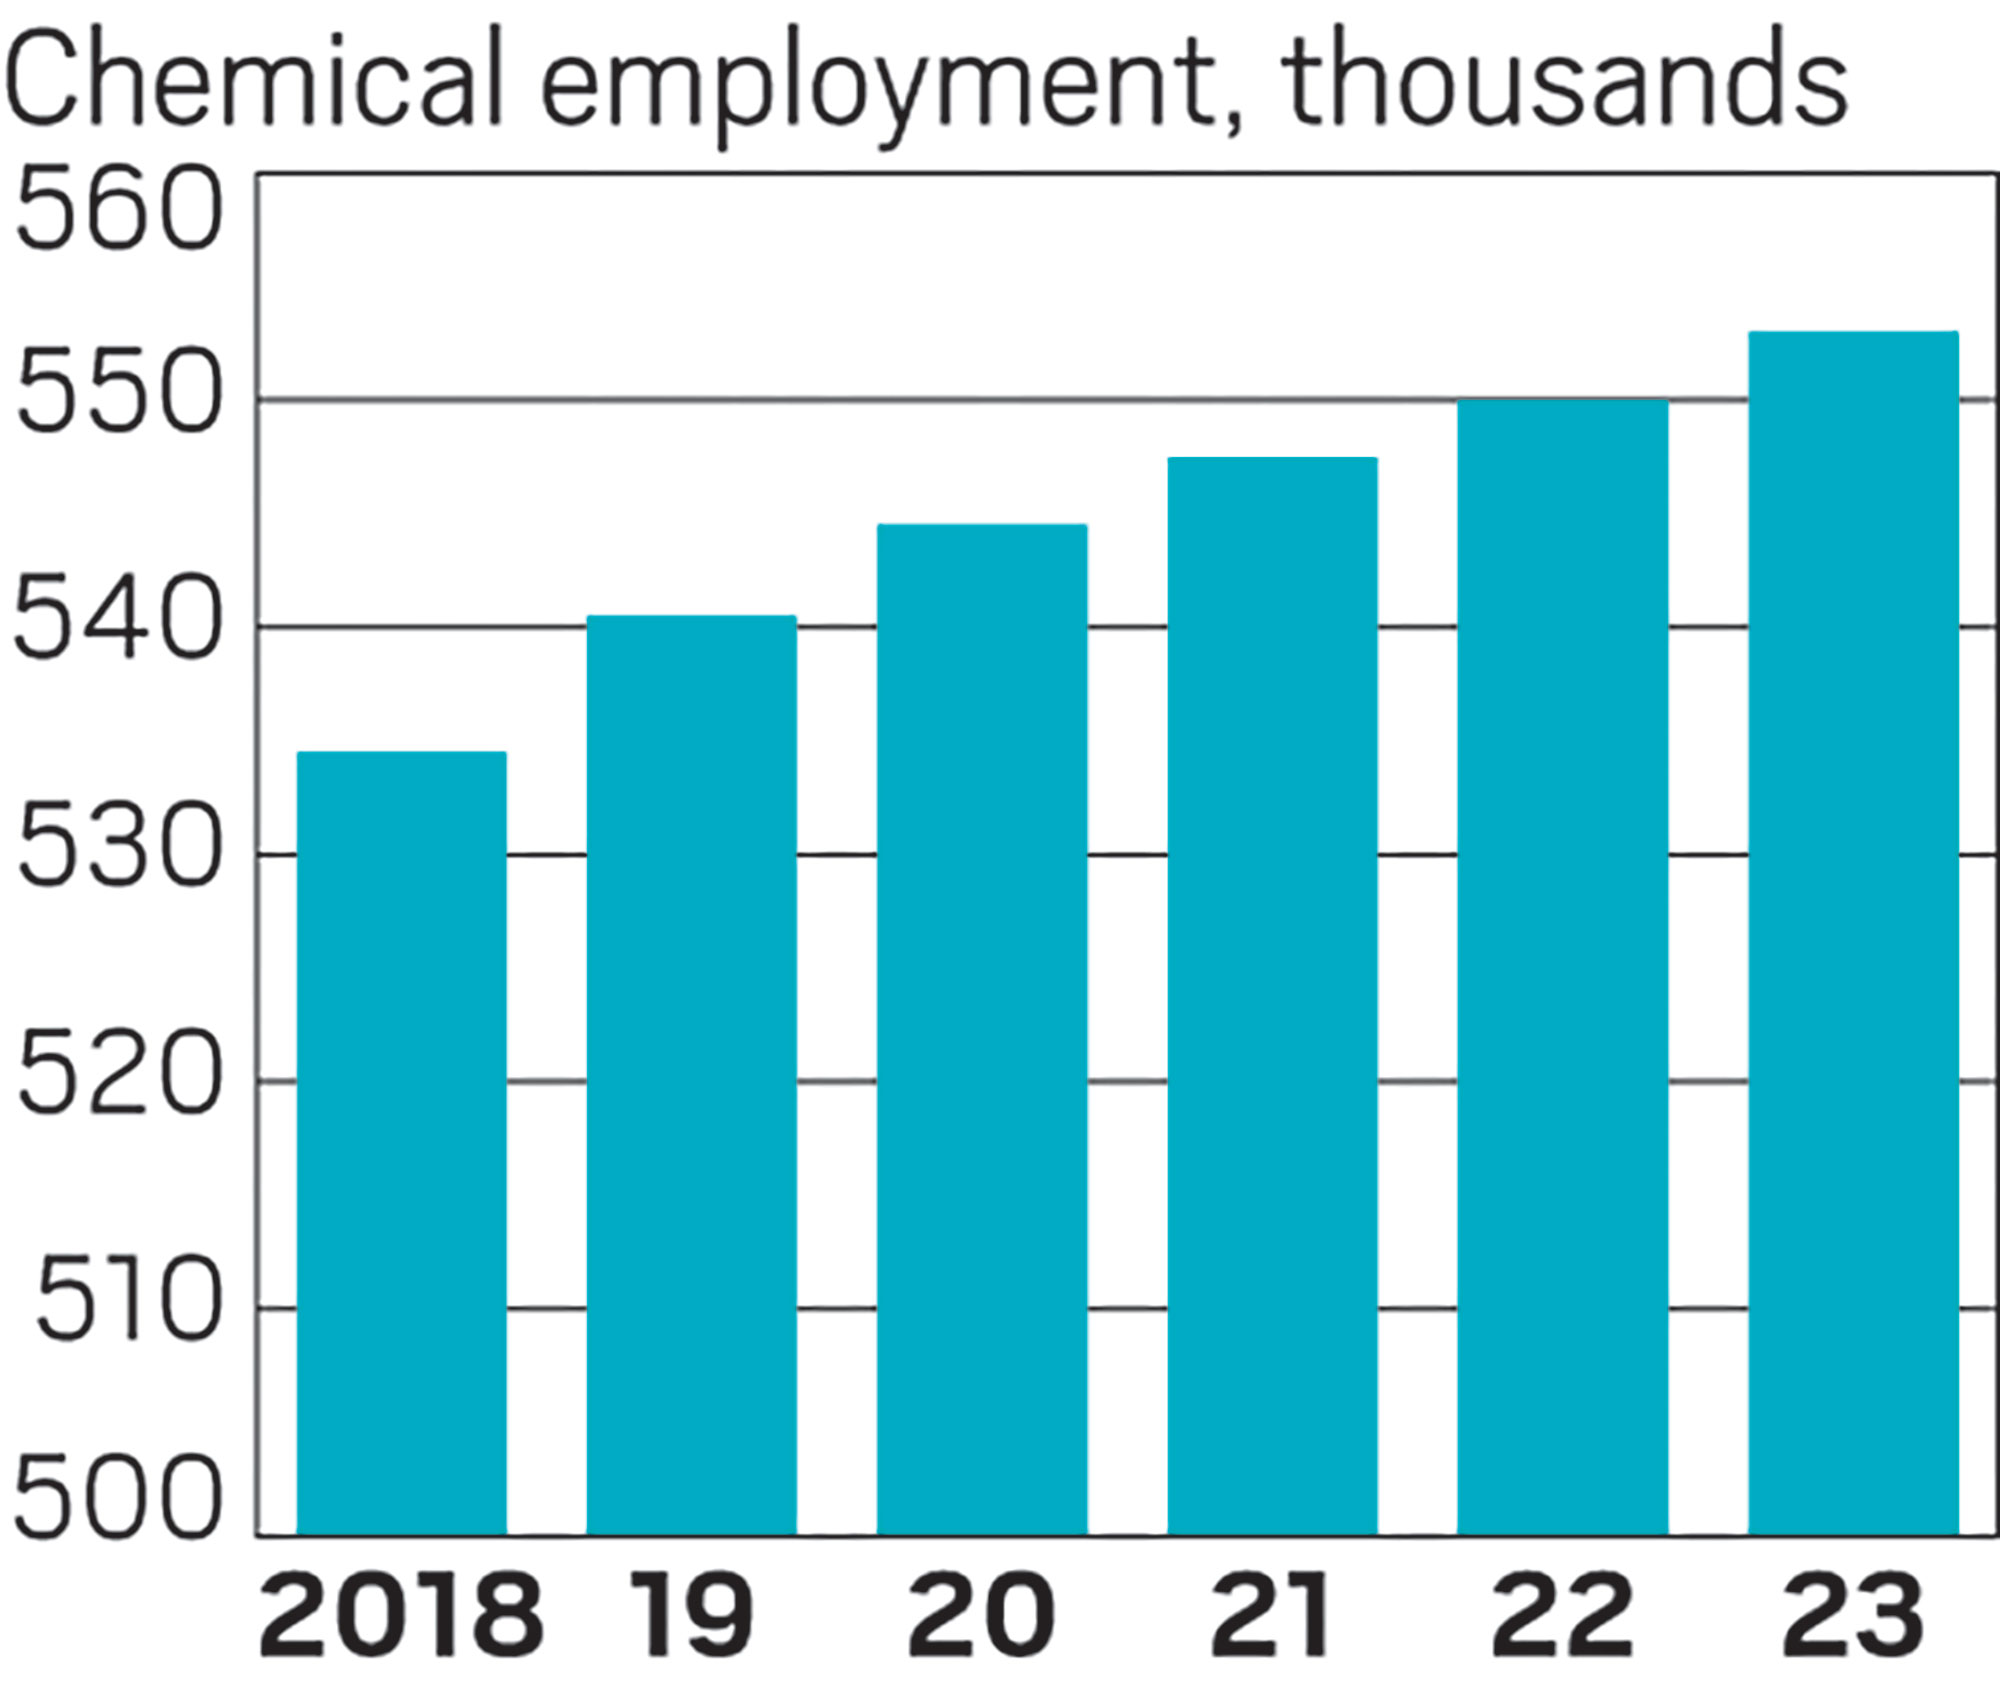 World Chemical Outlook 2019: Around the globe